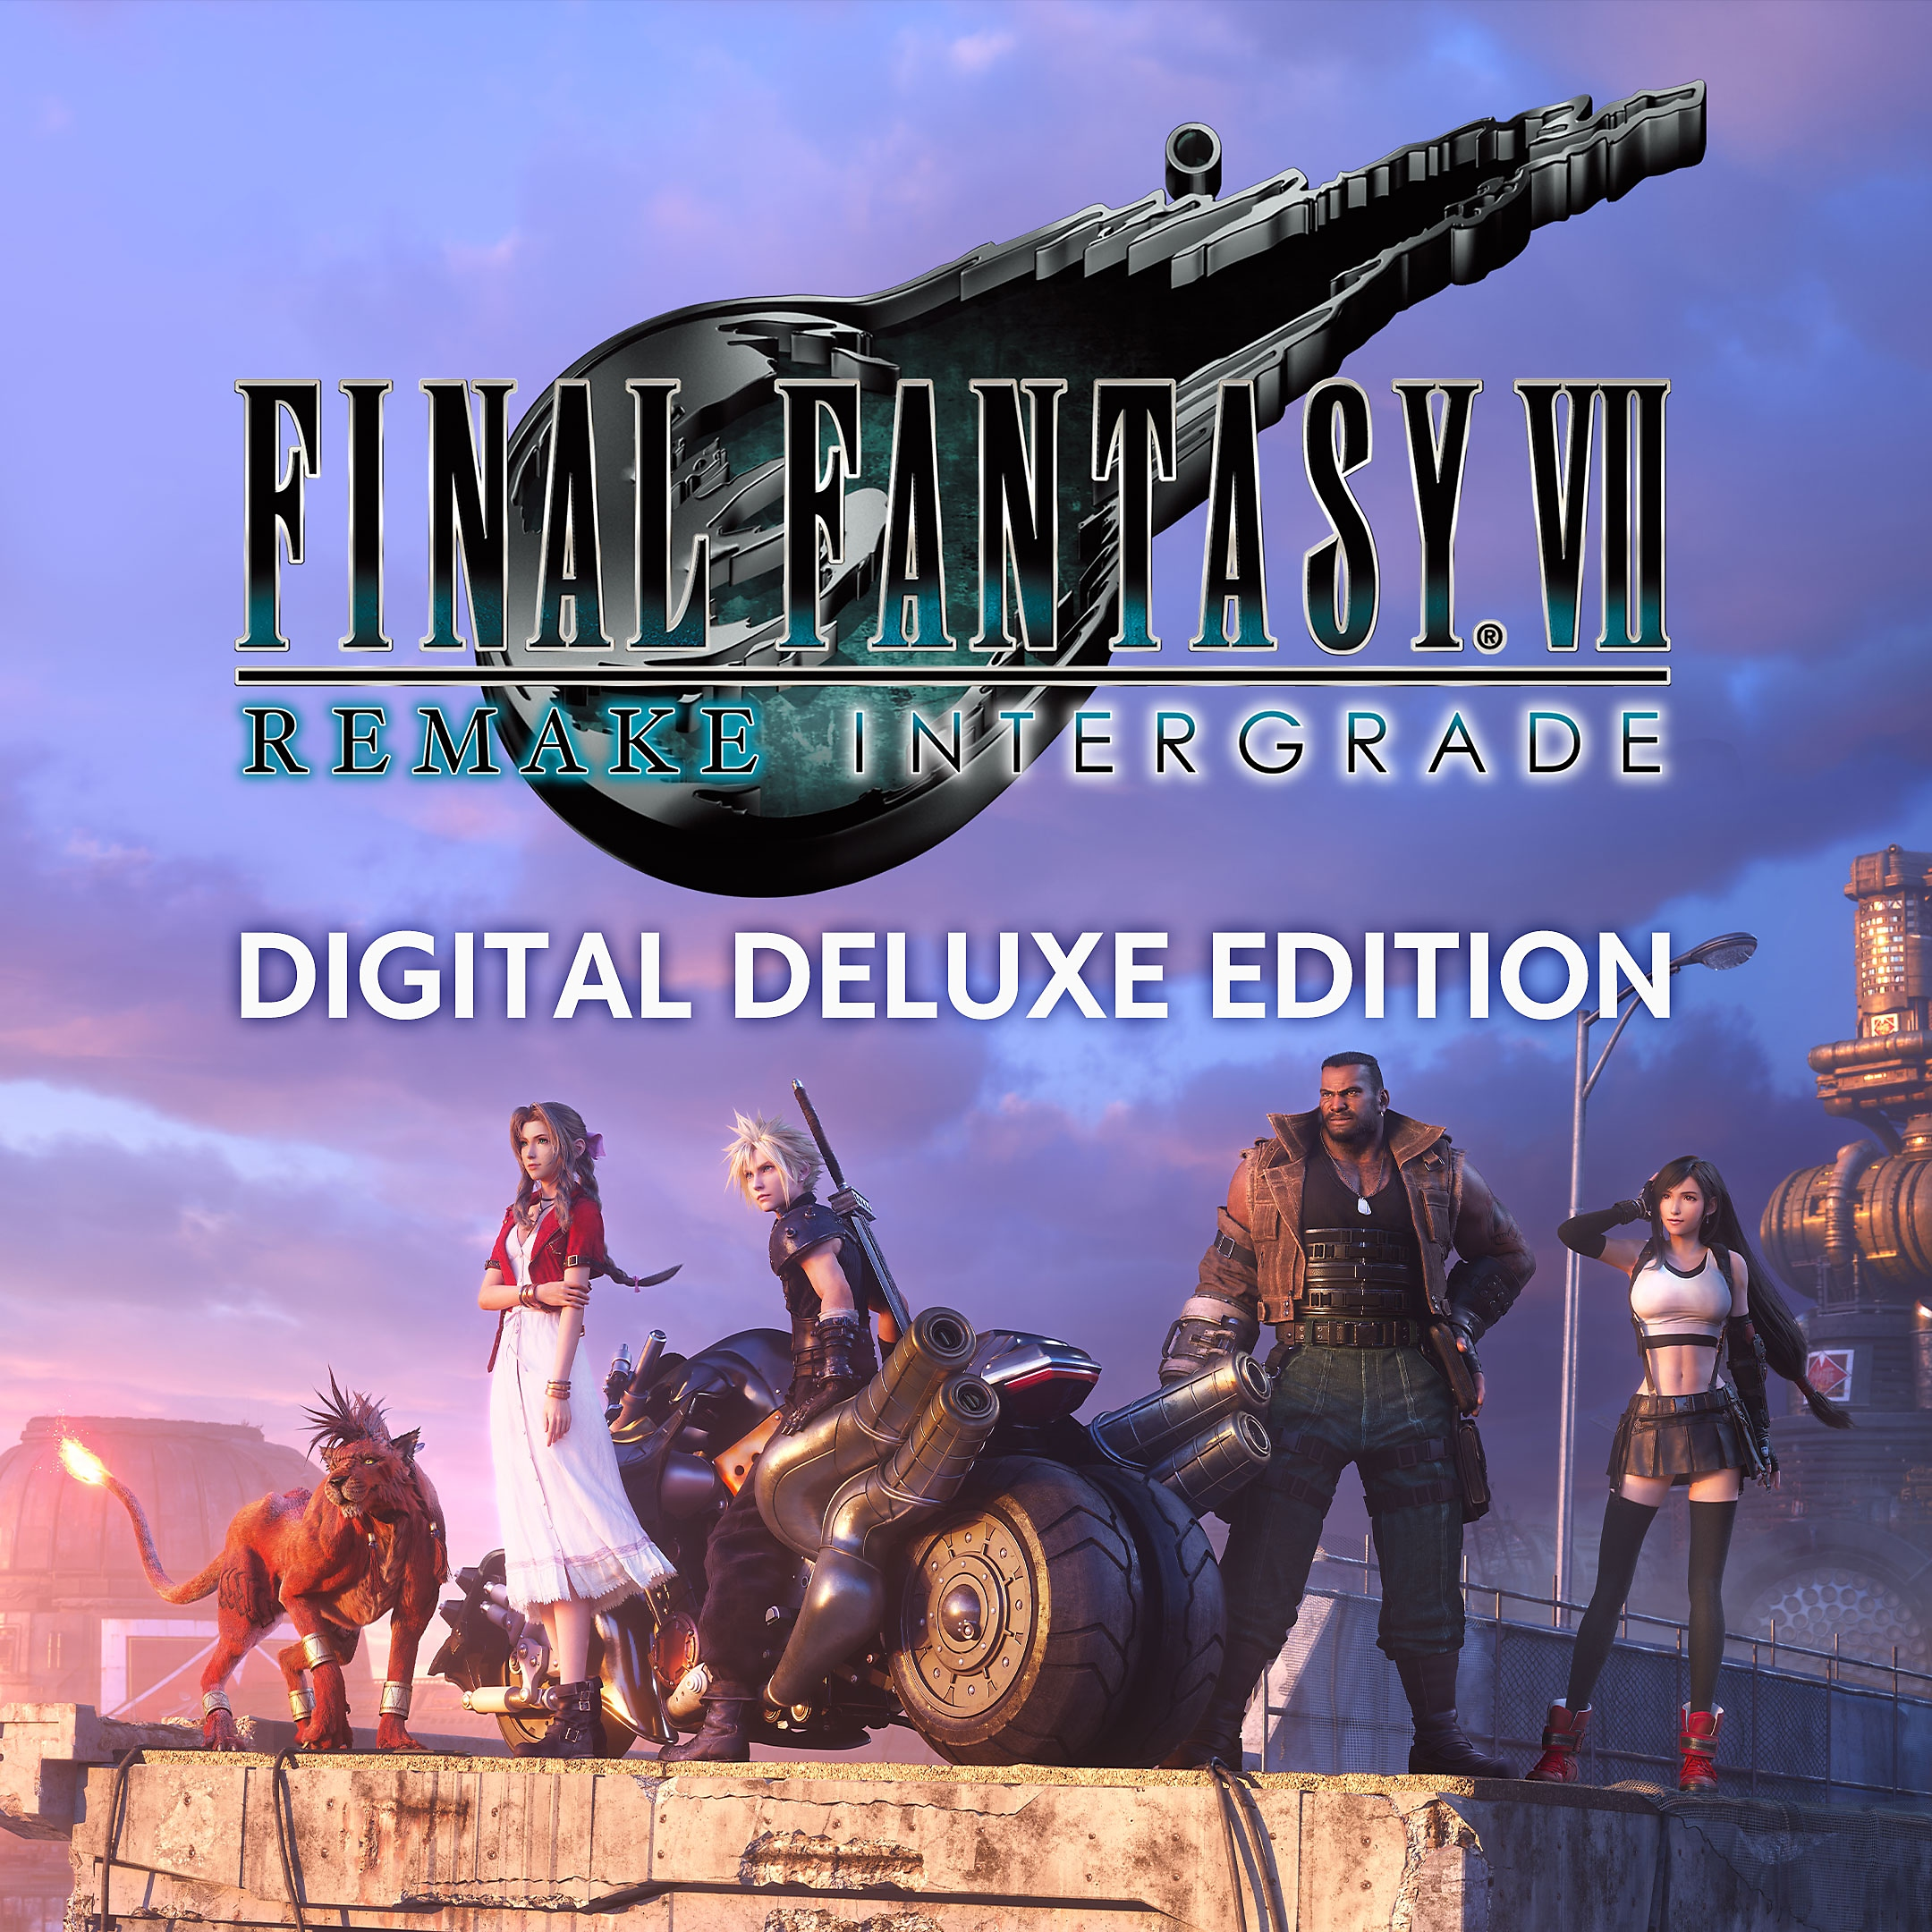 FINAL FANTASY VII REMAKE INTERGRADE - Digital Deluxe Edition Store Art